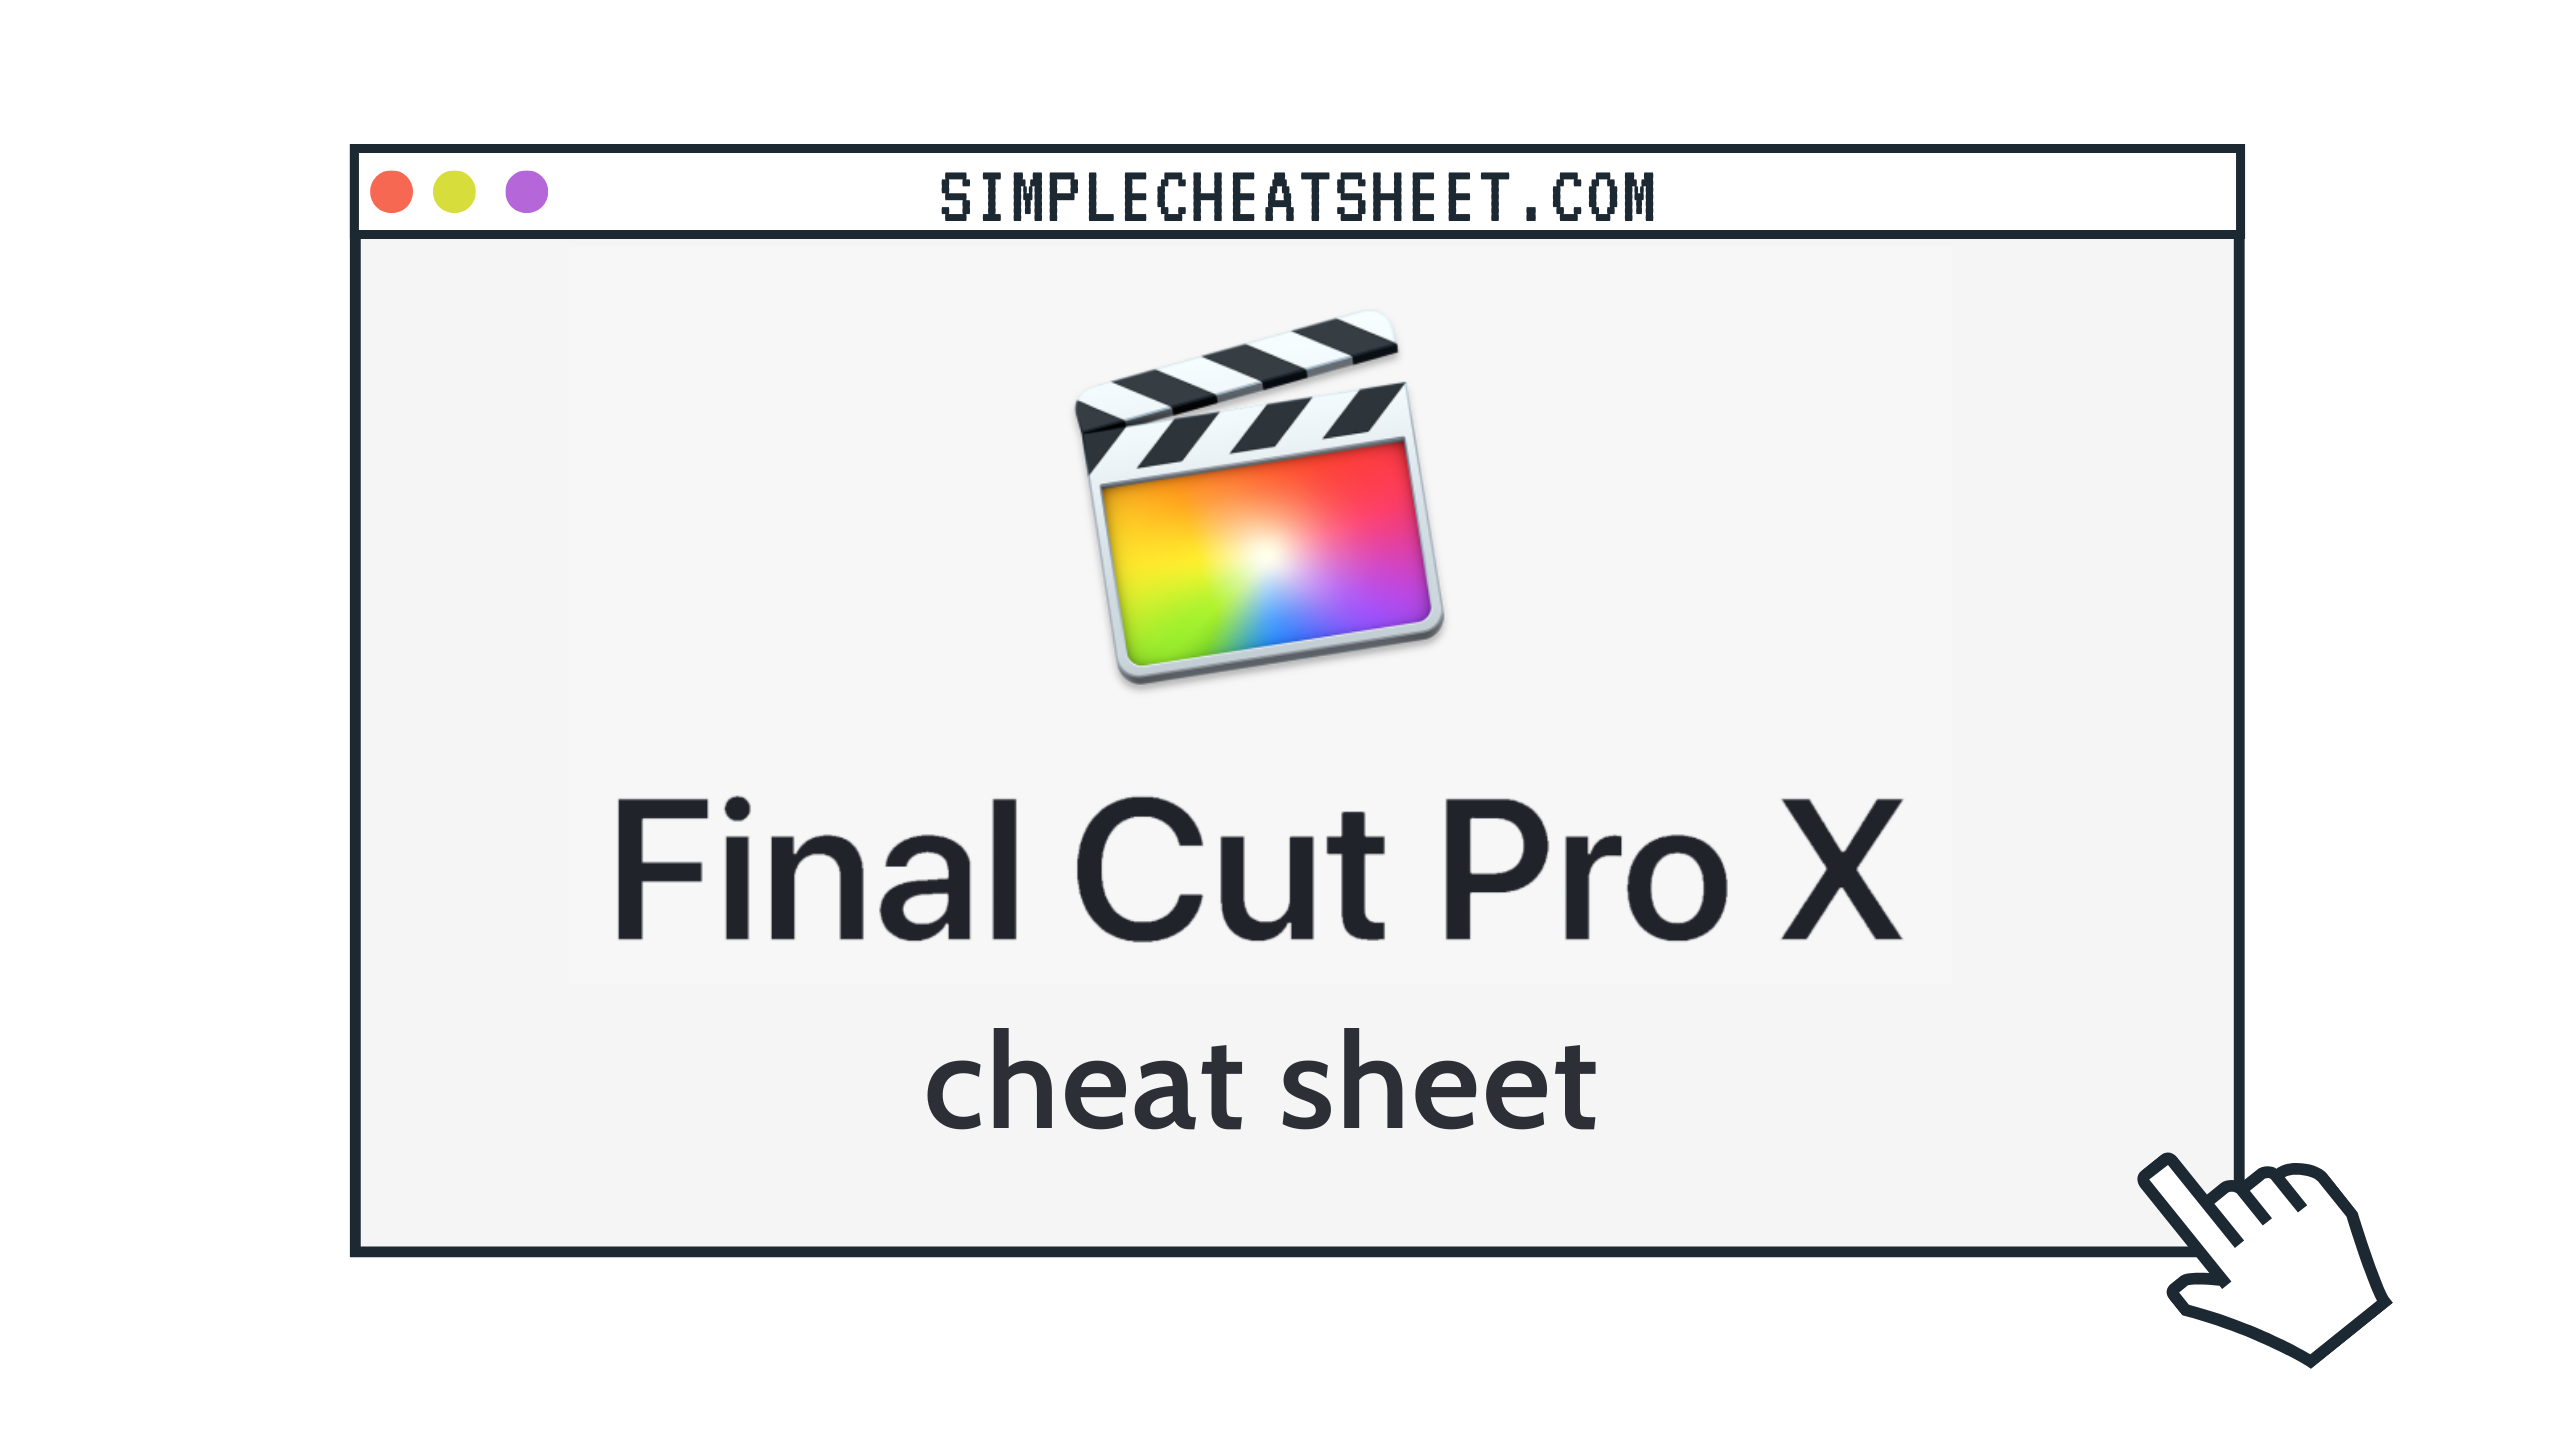 Final Cut Pro Cheat Sheet